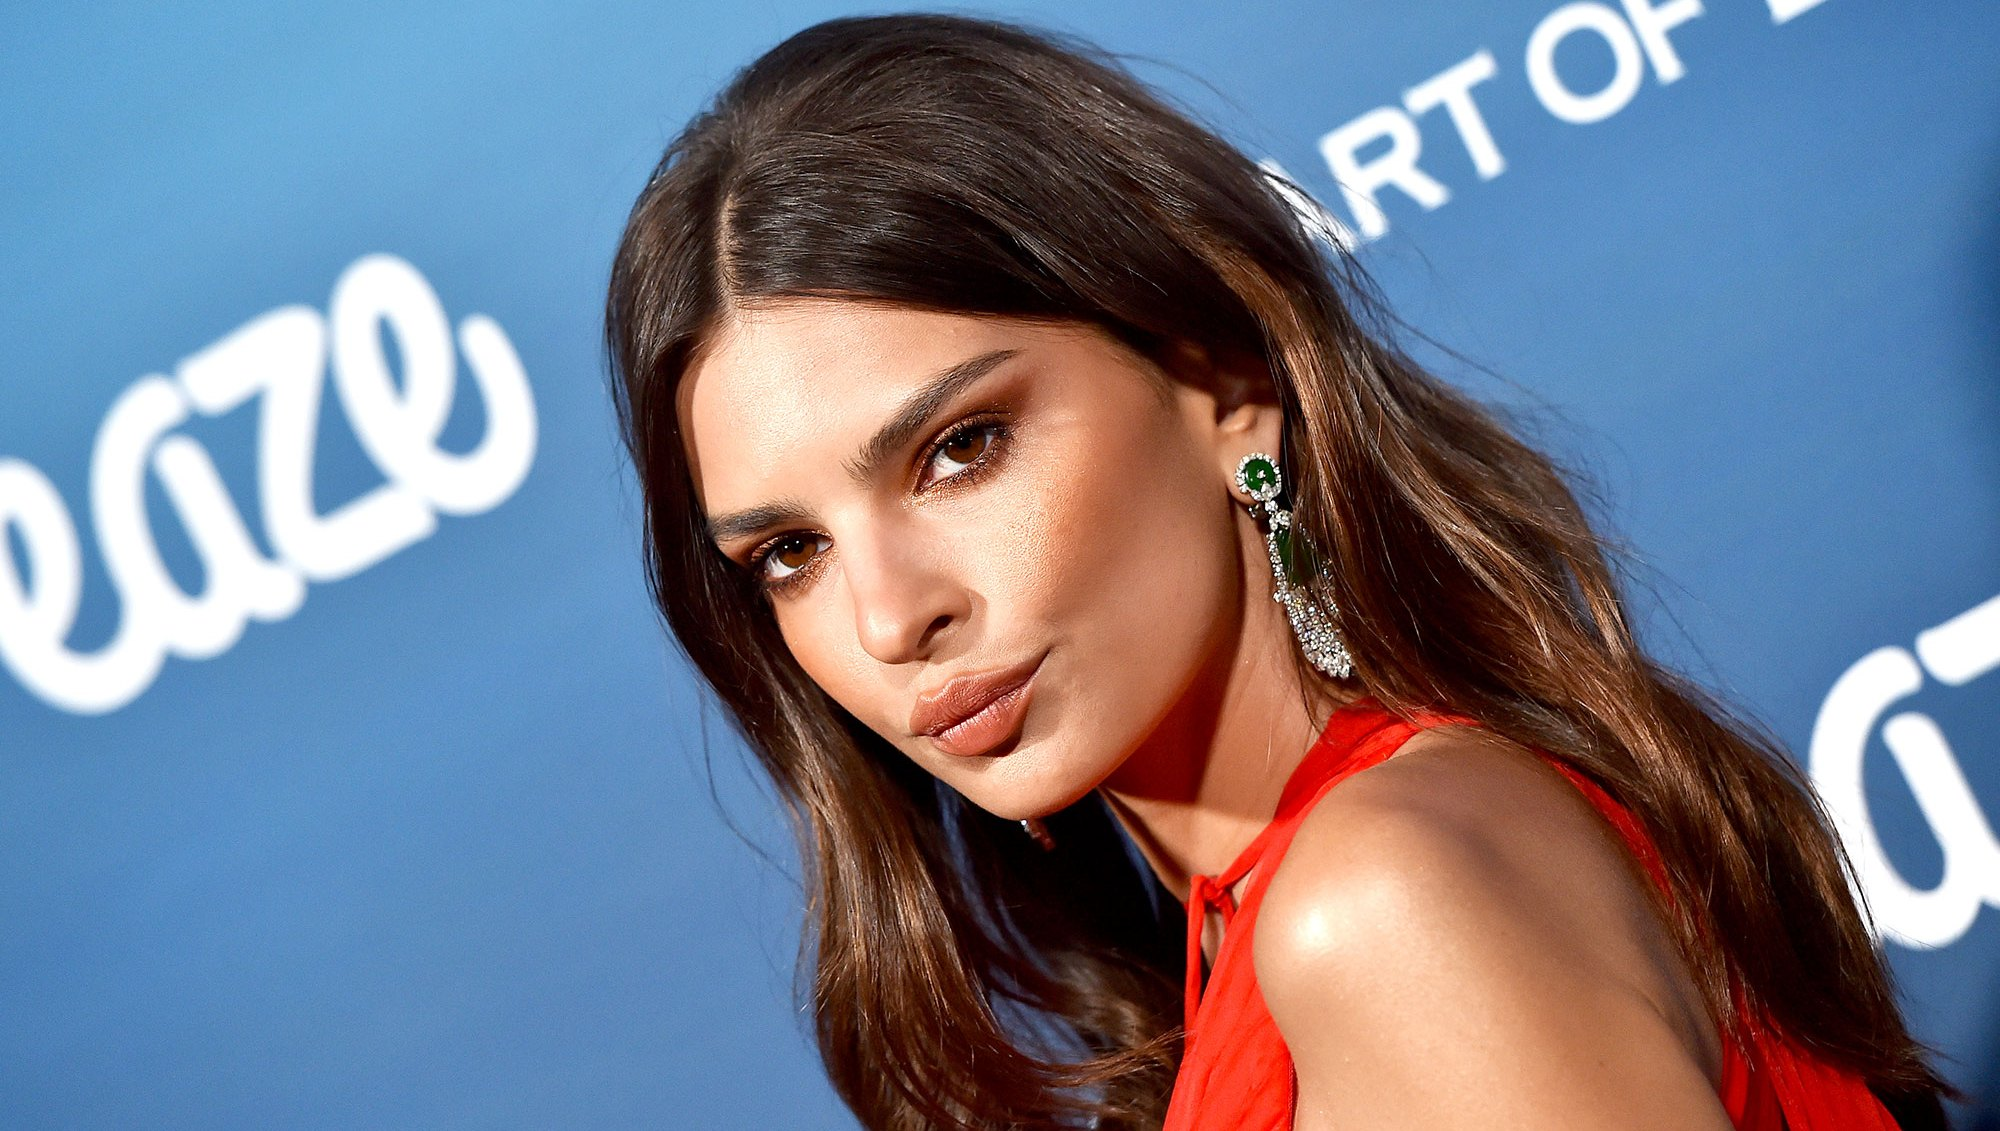 Emily Ratajkowski $800 Beauty Routine